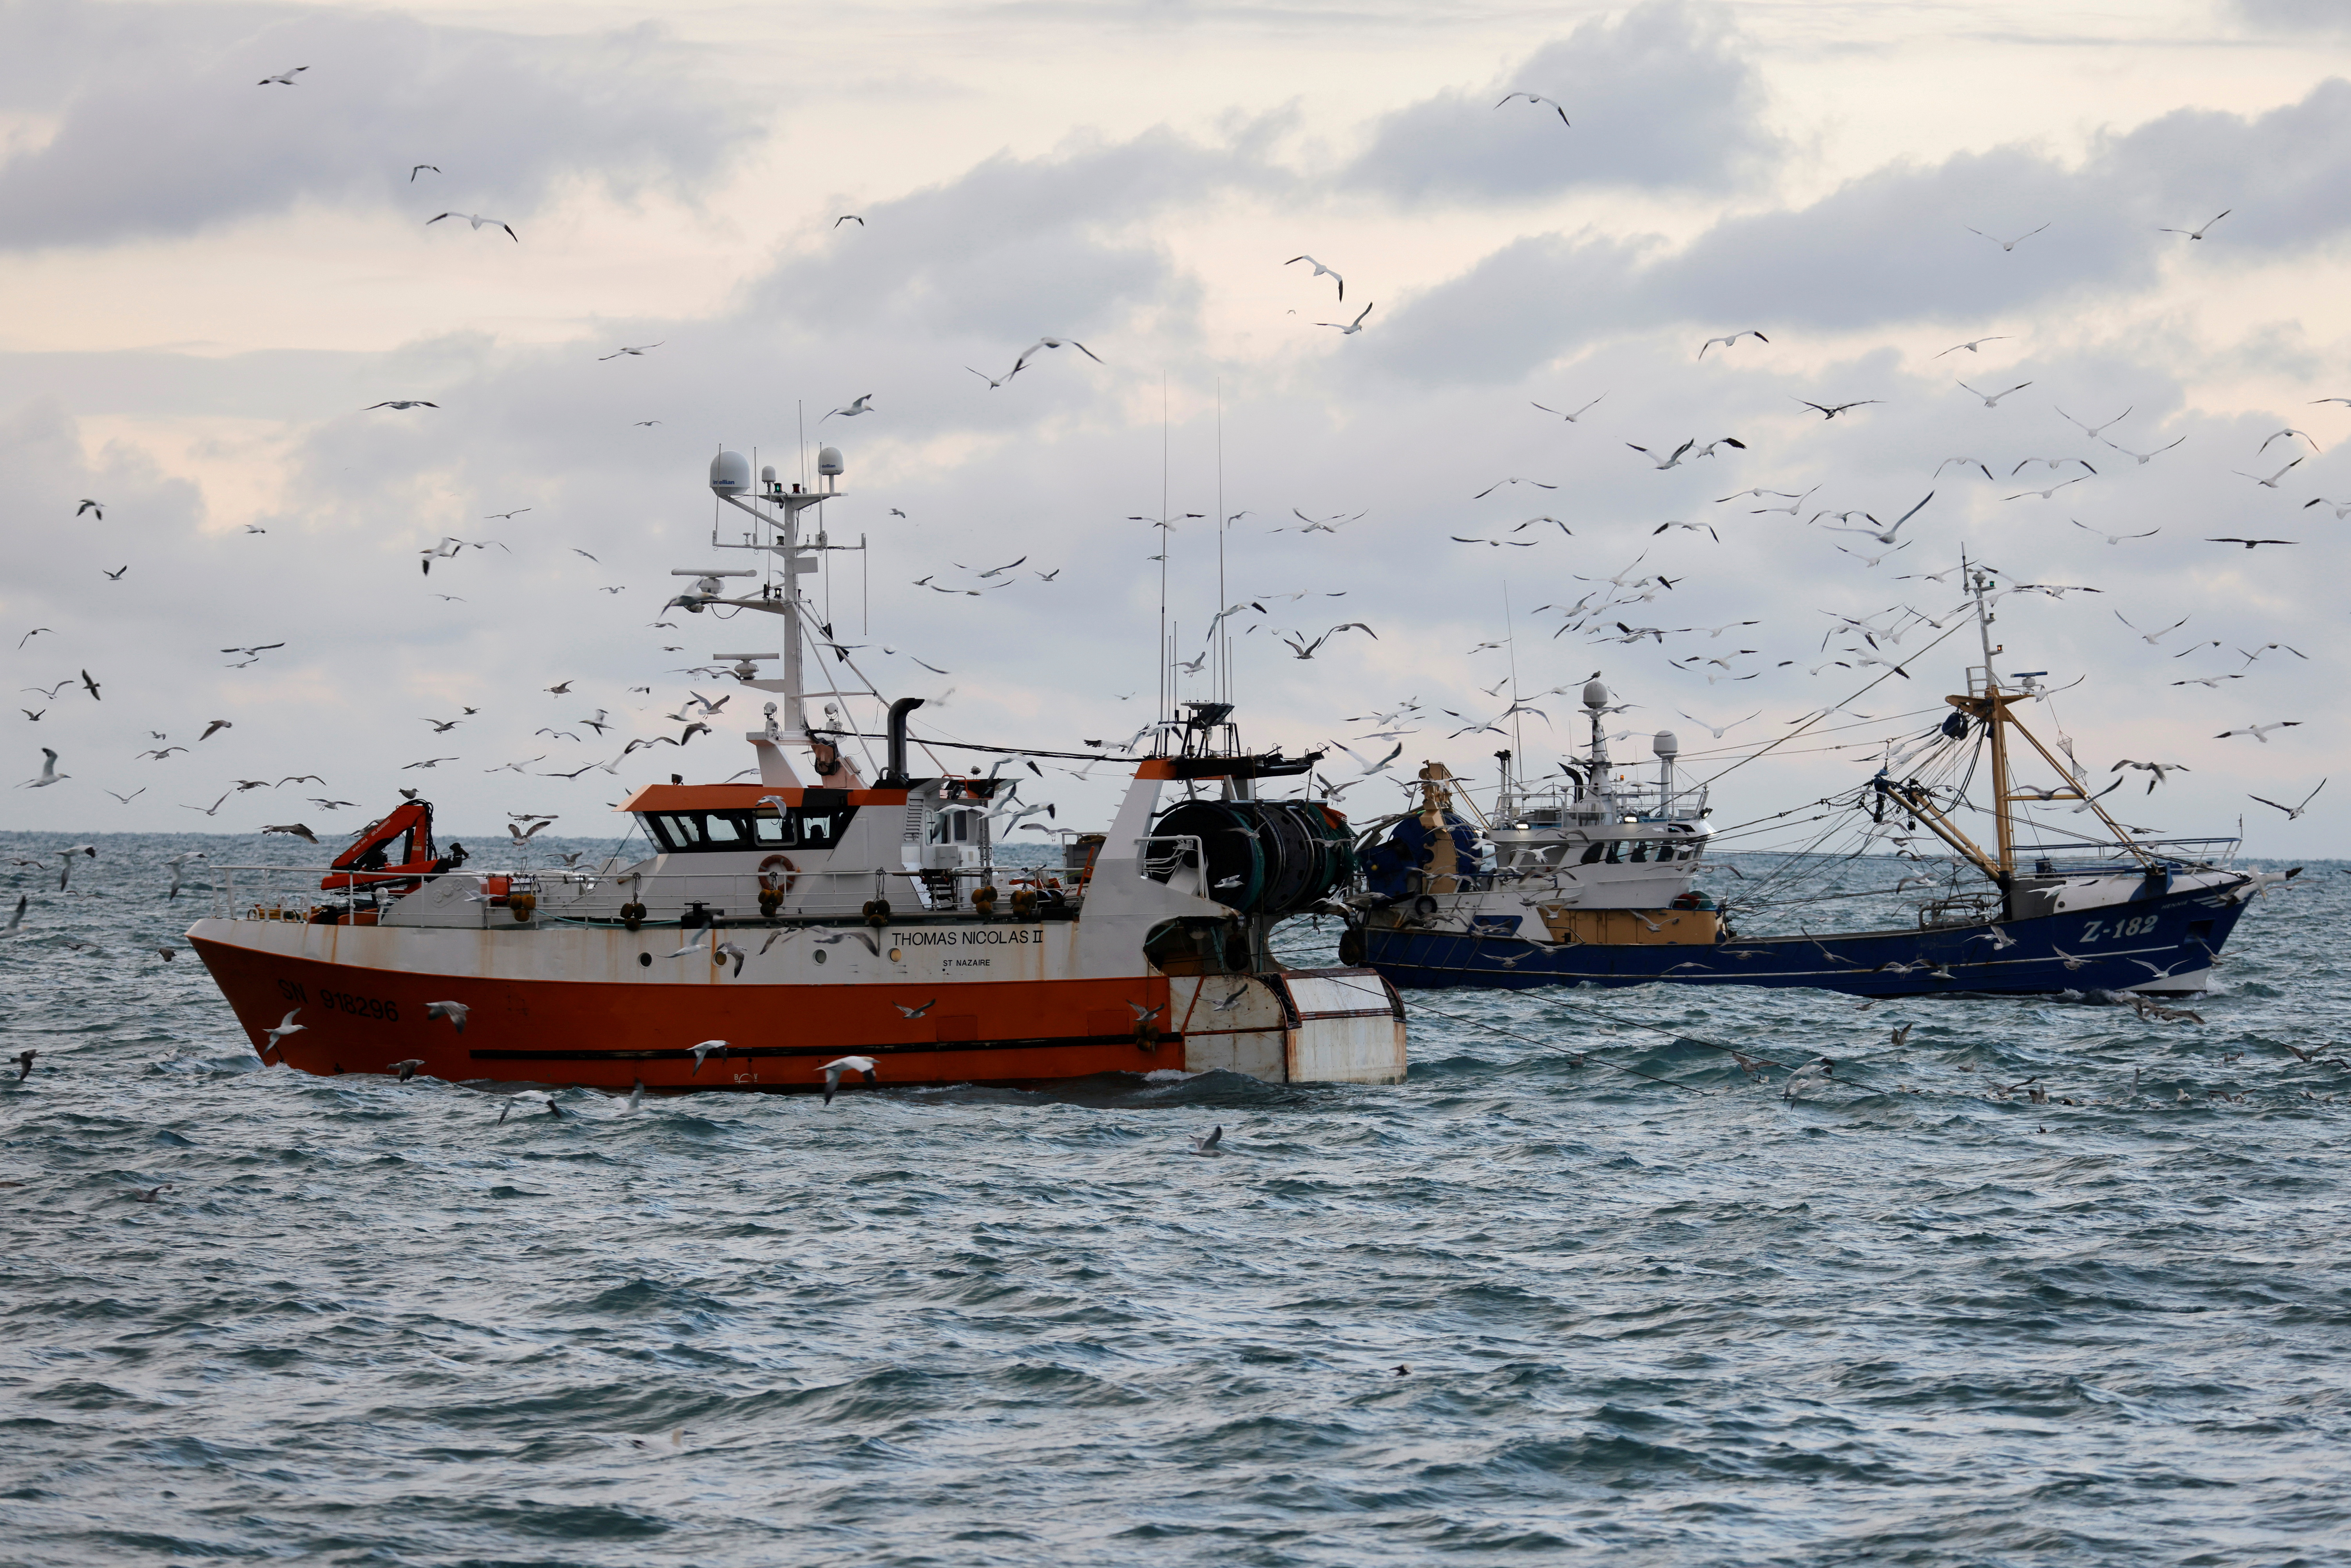 The French trawler